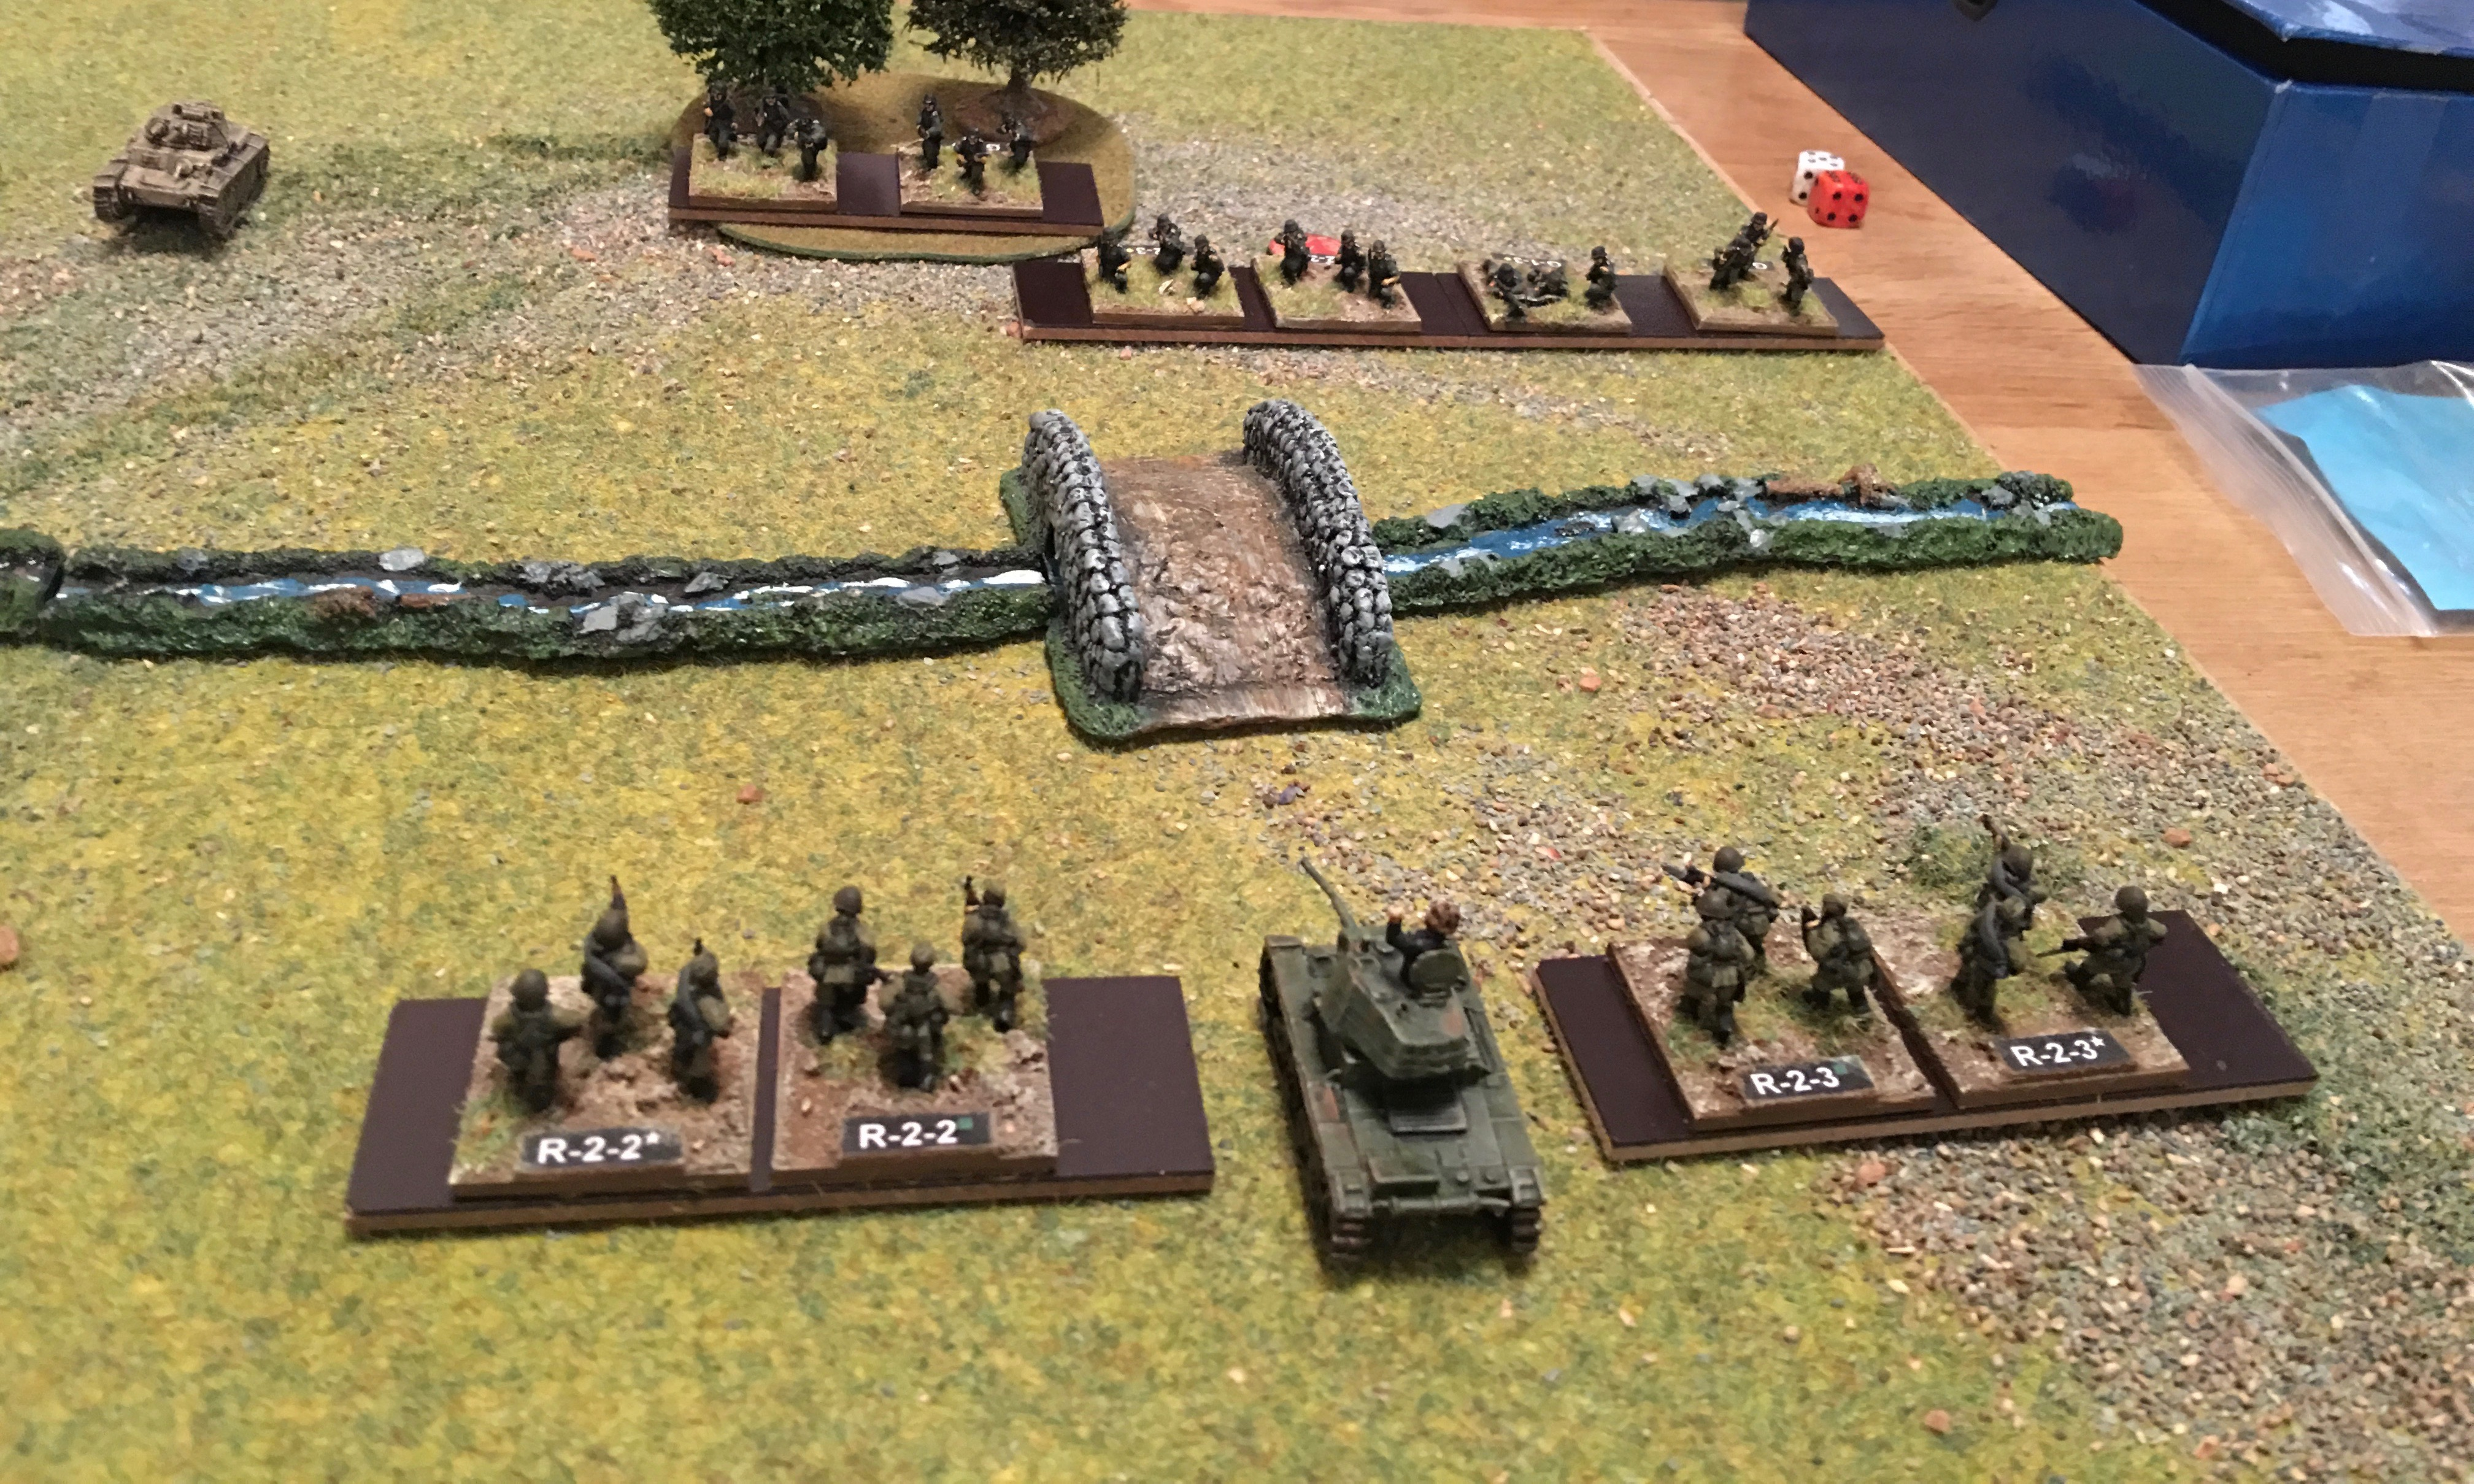 Photo from Steven Thomas wargame using One Hour Wargames rules